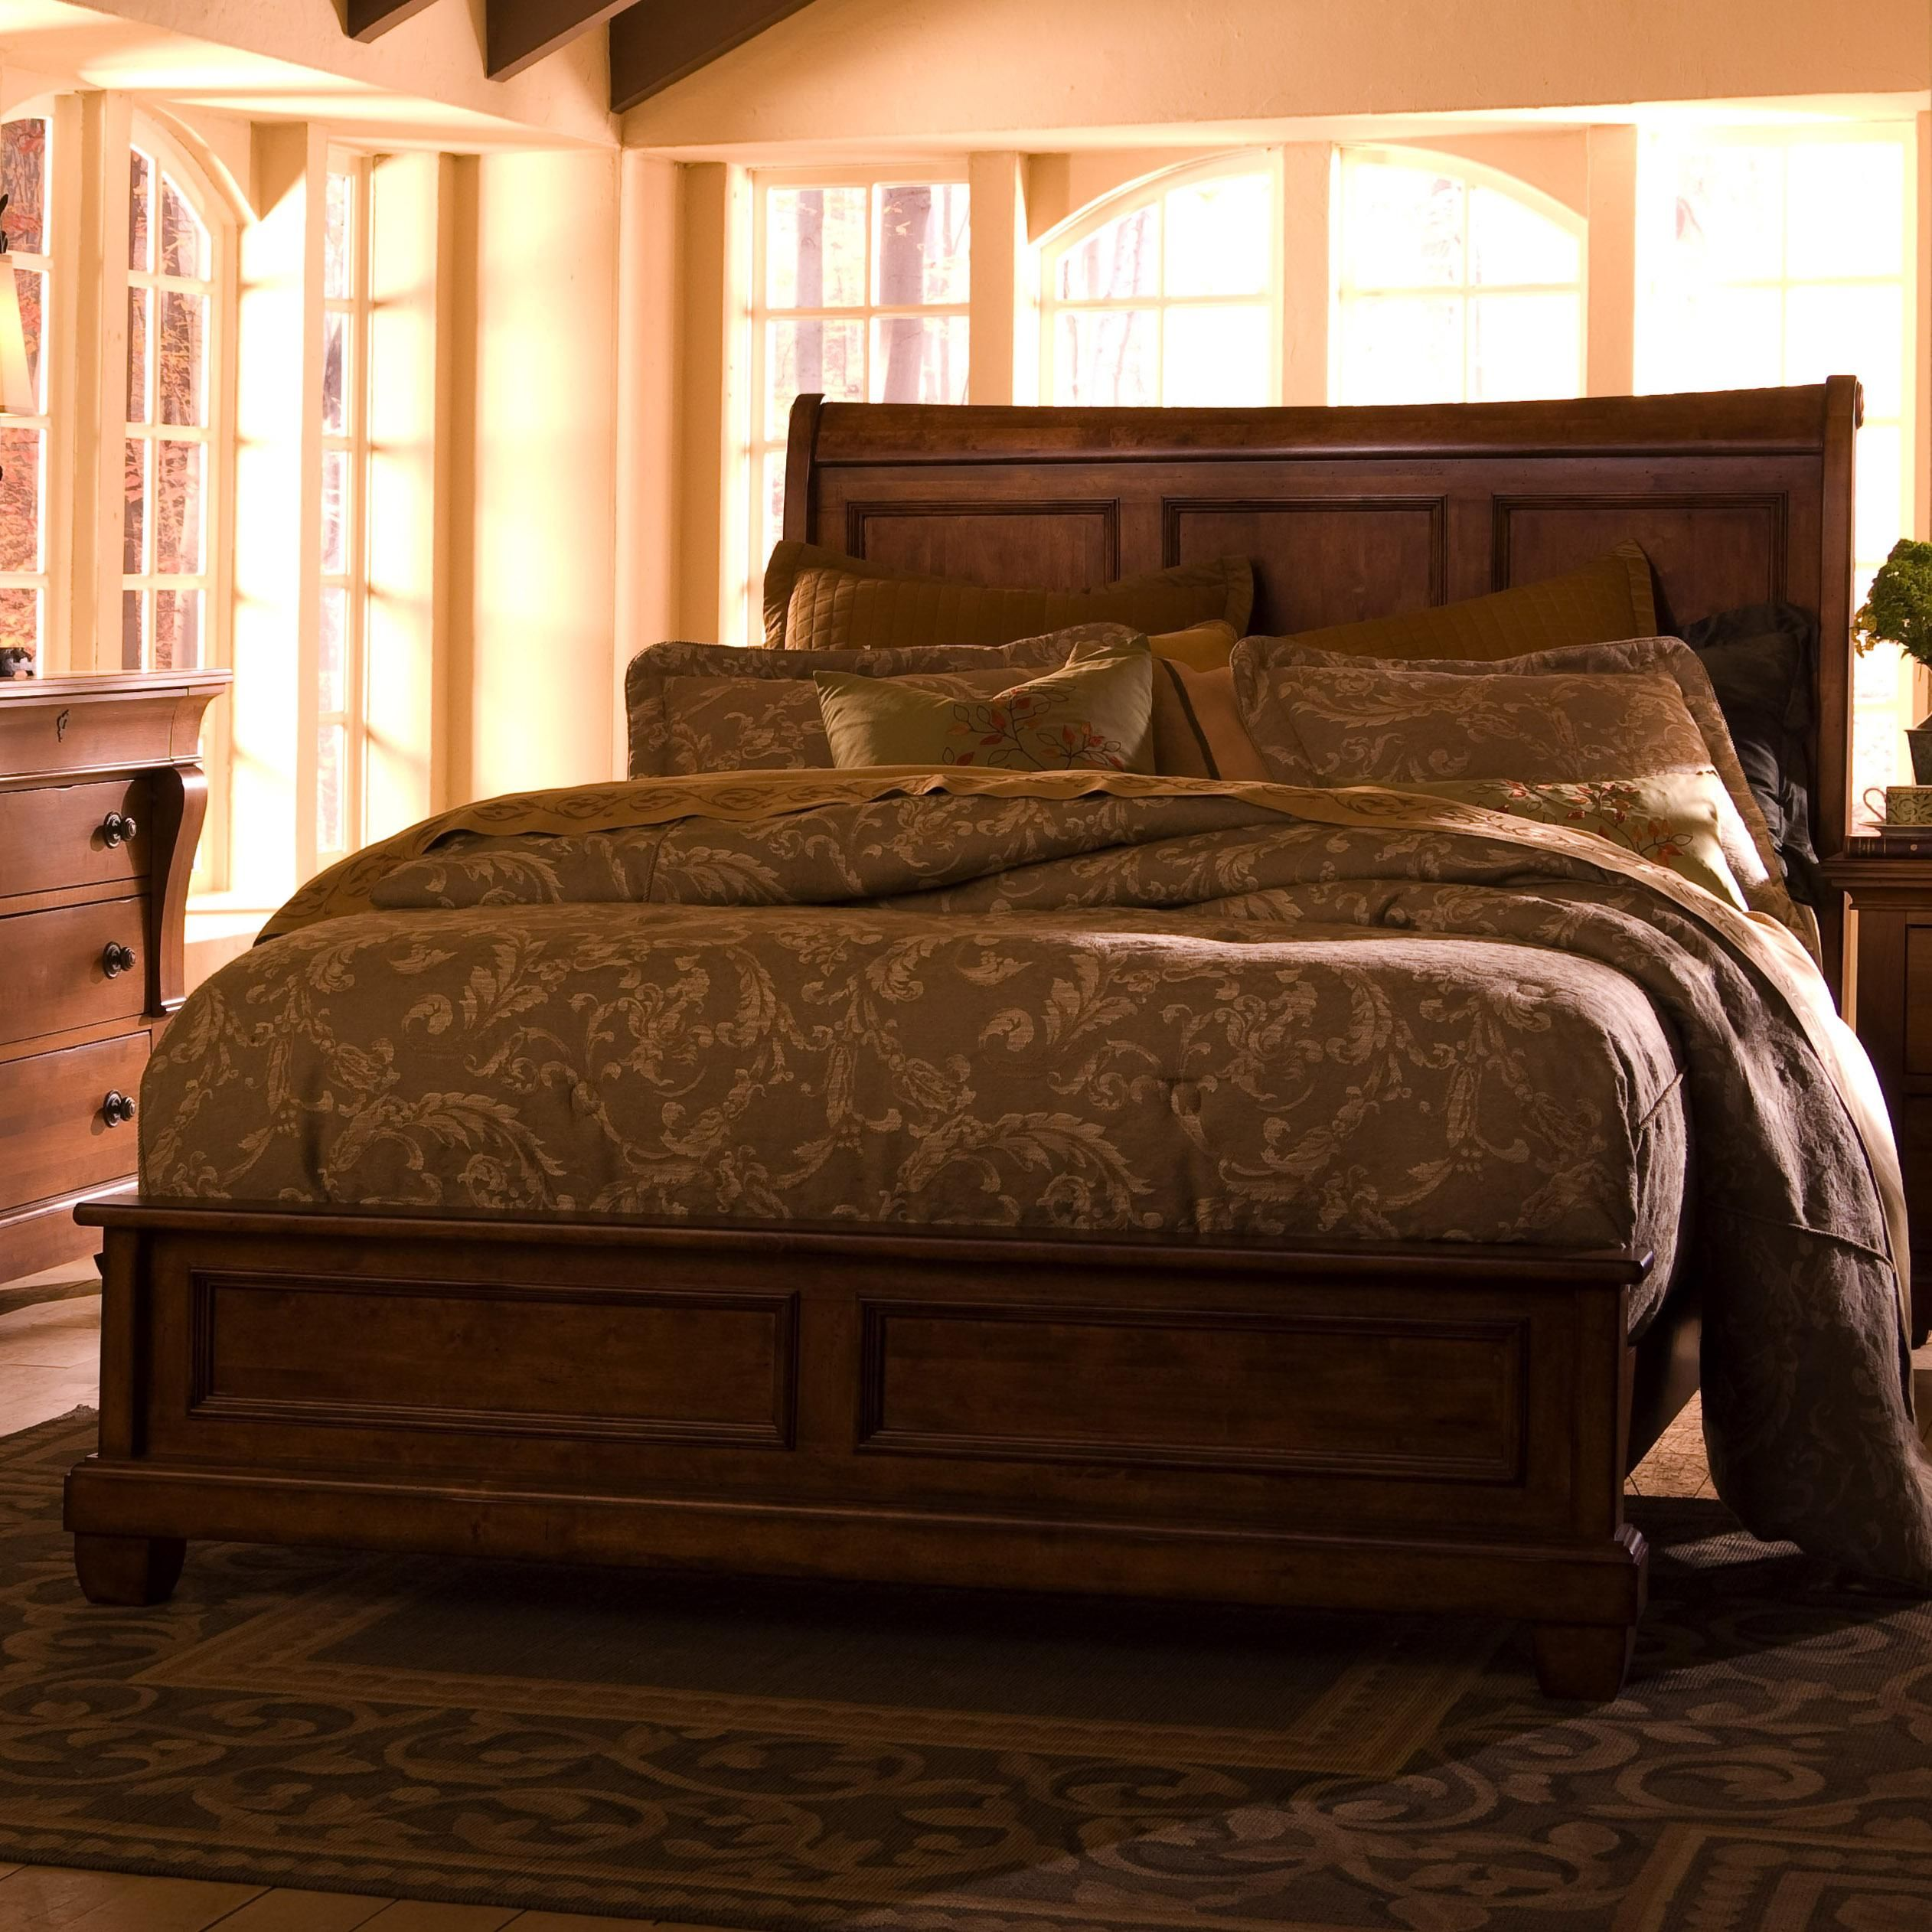 Tuscano Platform Bedroom Sets By Kincaid Furniture. Tuscano Collection Of  Solid Wood Furniture By Kincaid.